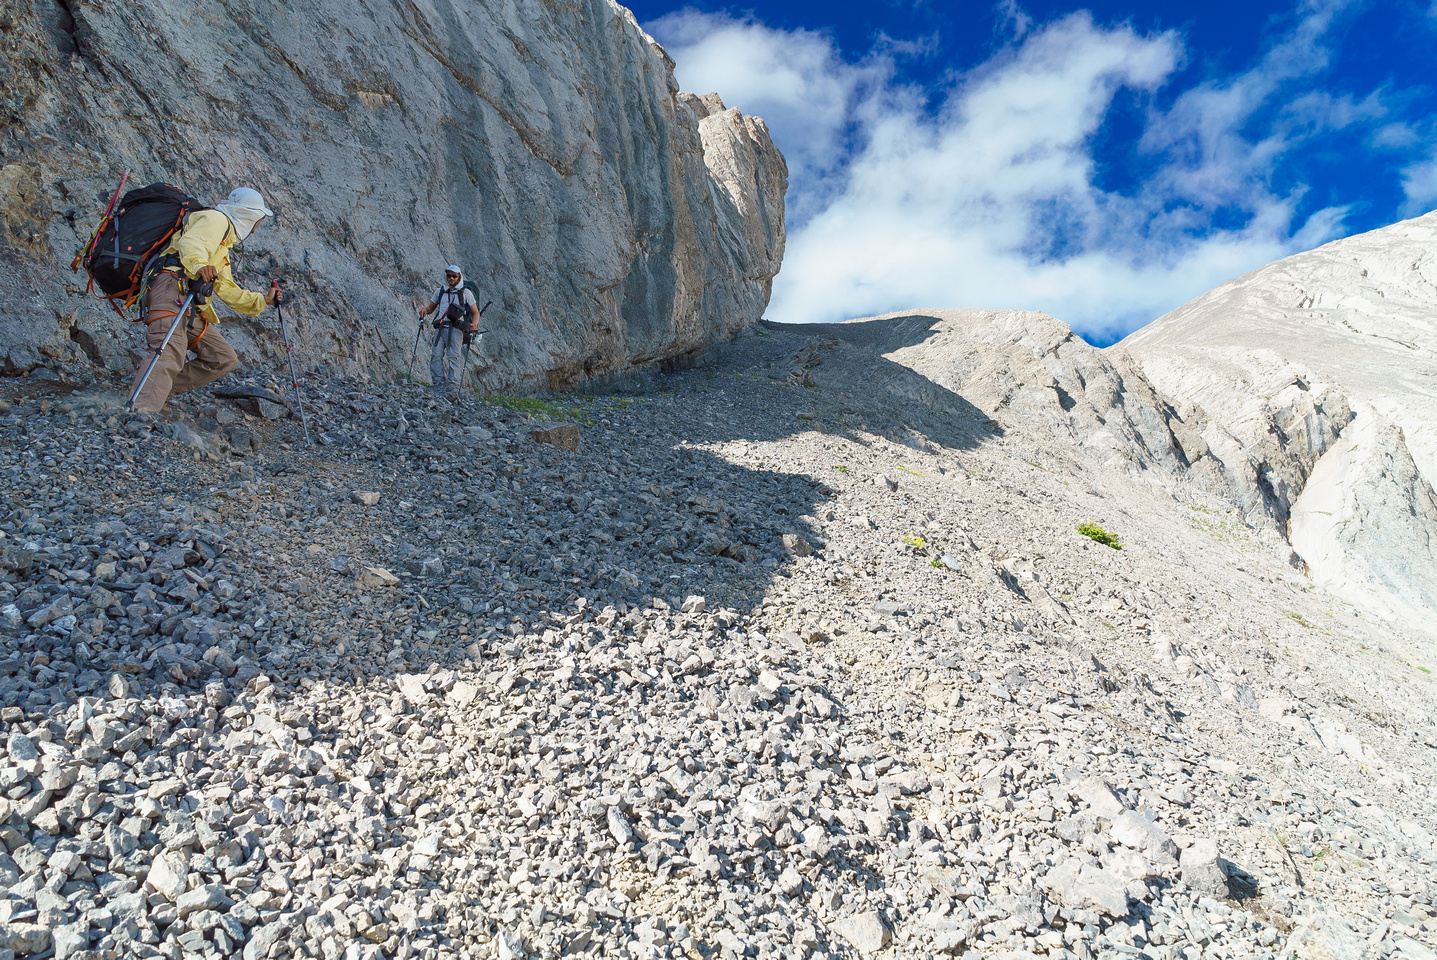 Looking back up the 'hidden' scree ramp descent from the spur. I have no idea how Dow found it but it works great.